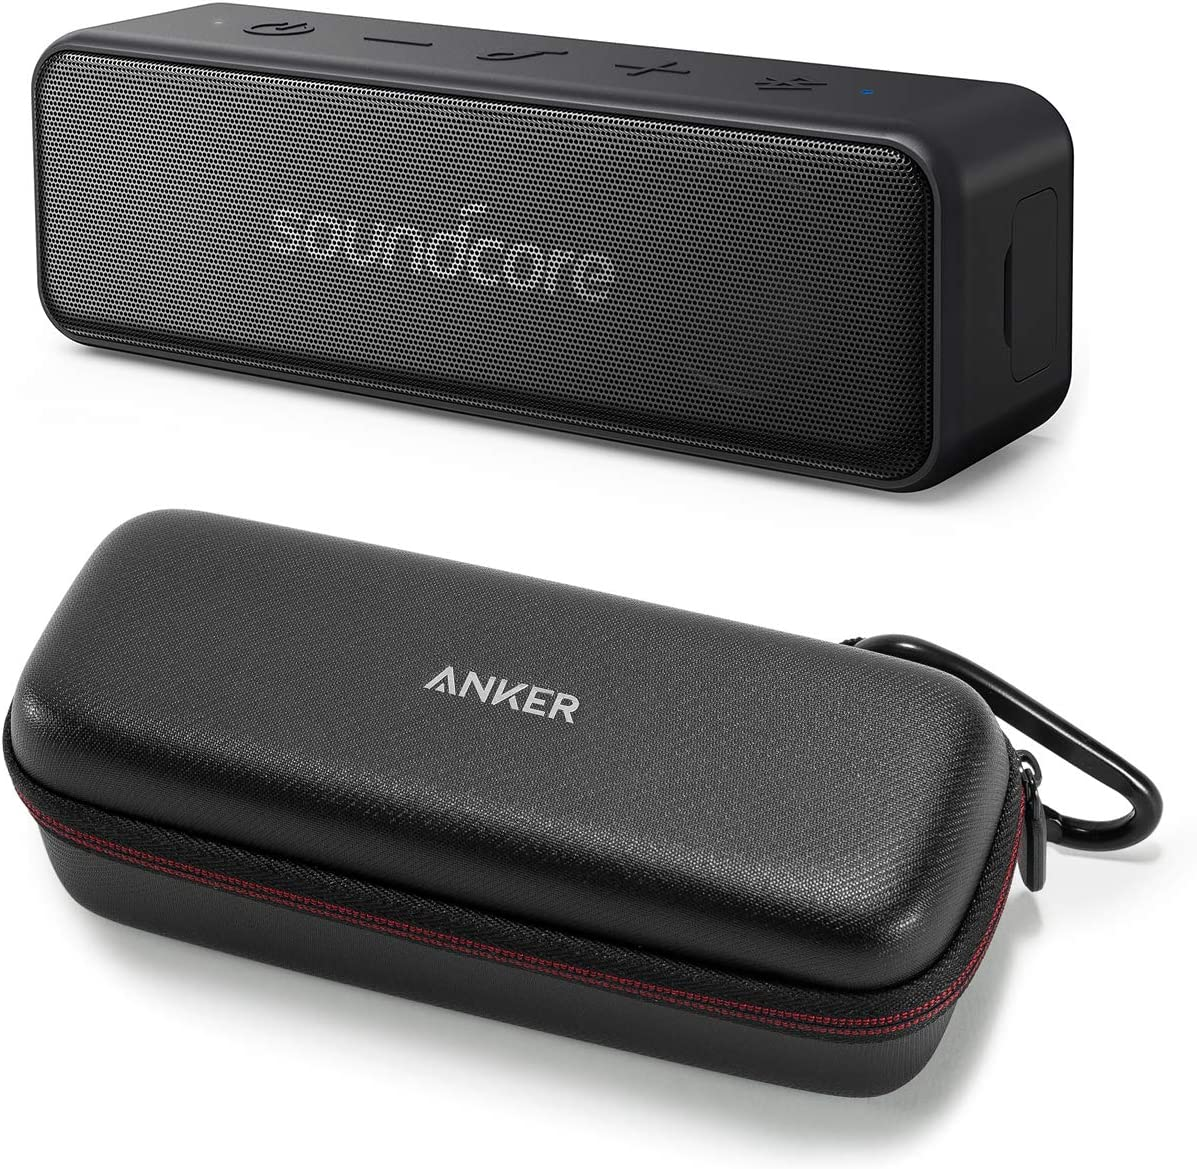 Anker Soundcore Motion B Bluetooth Speaker Bundle with Official Travel Case